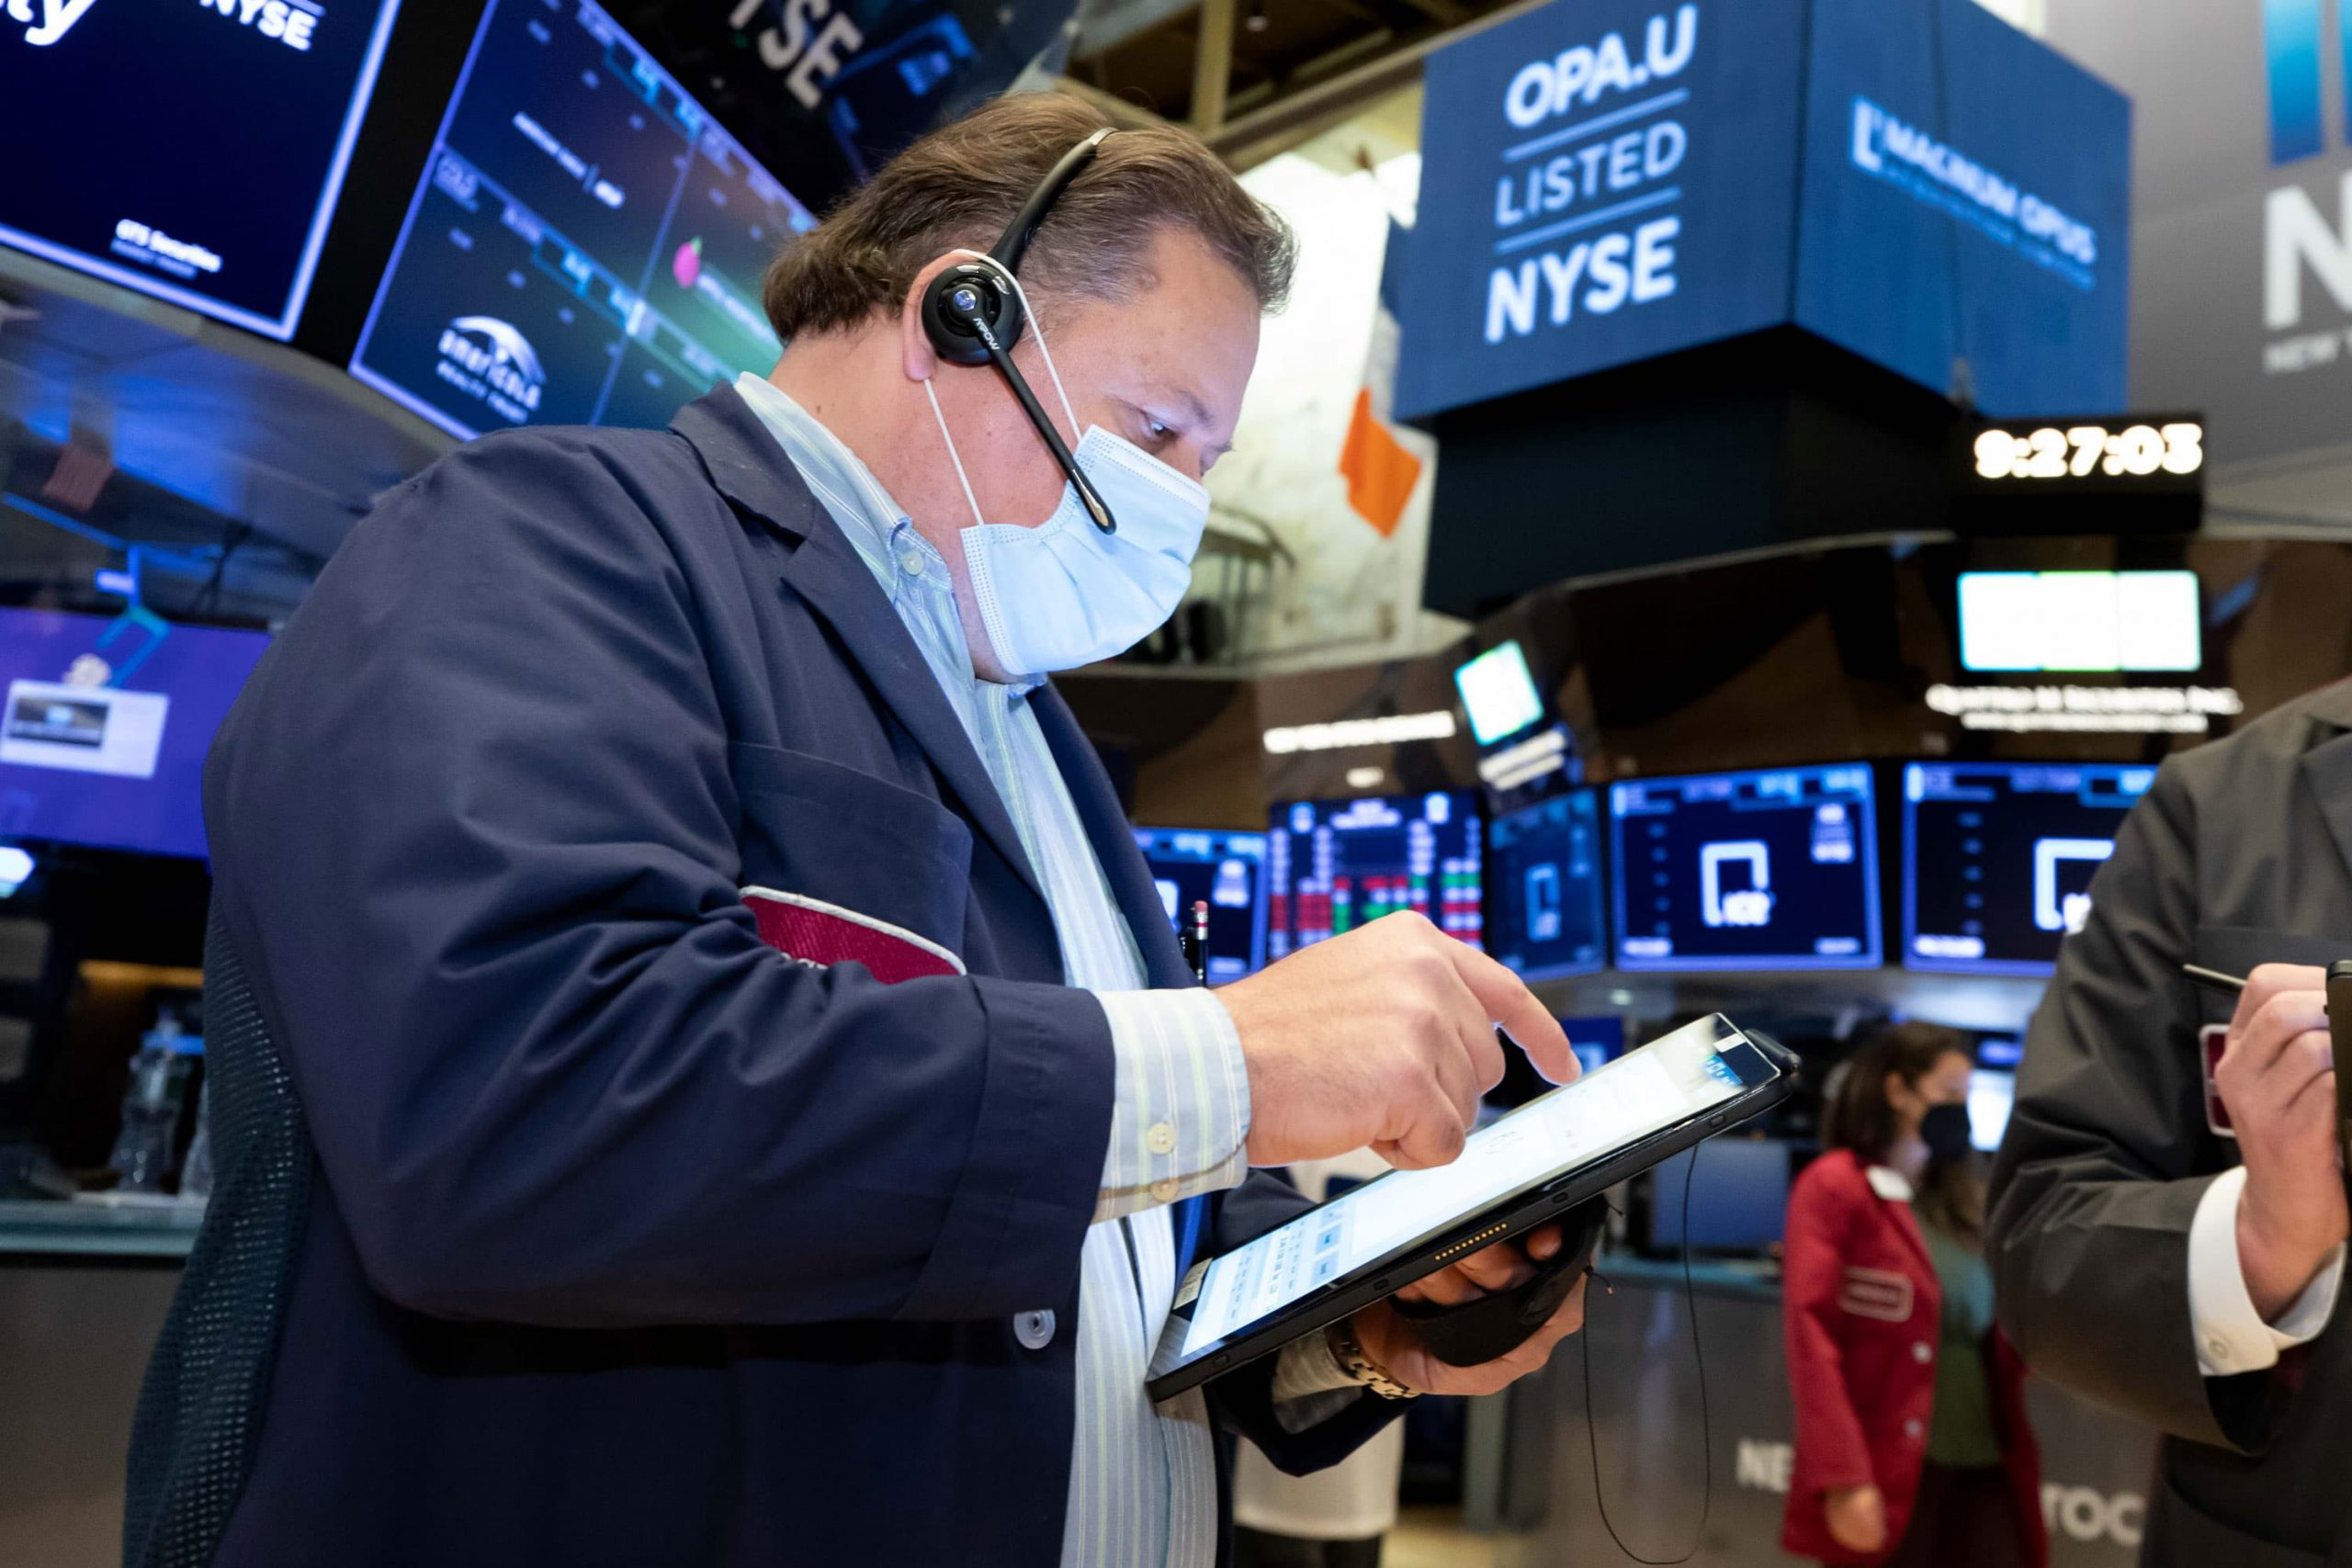 Stocks set to pop on strong earnings reports